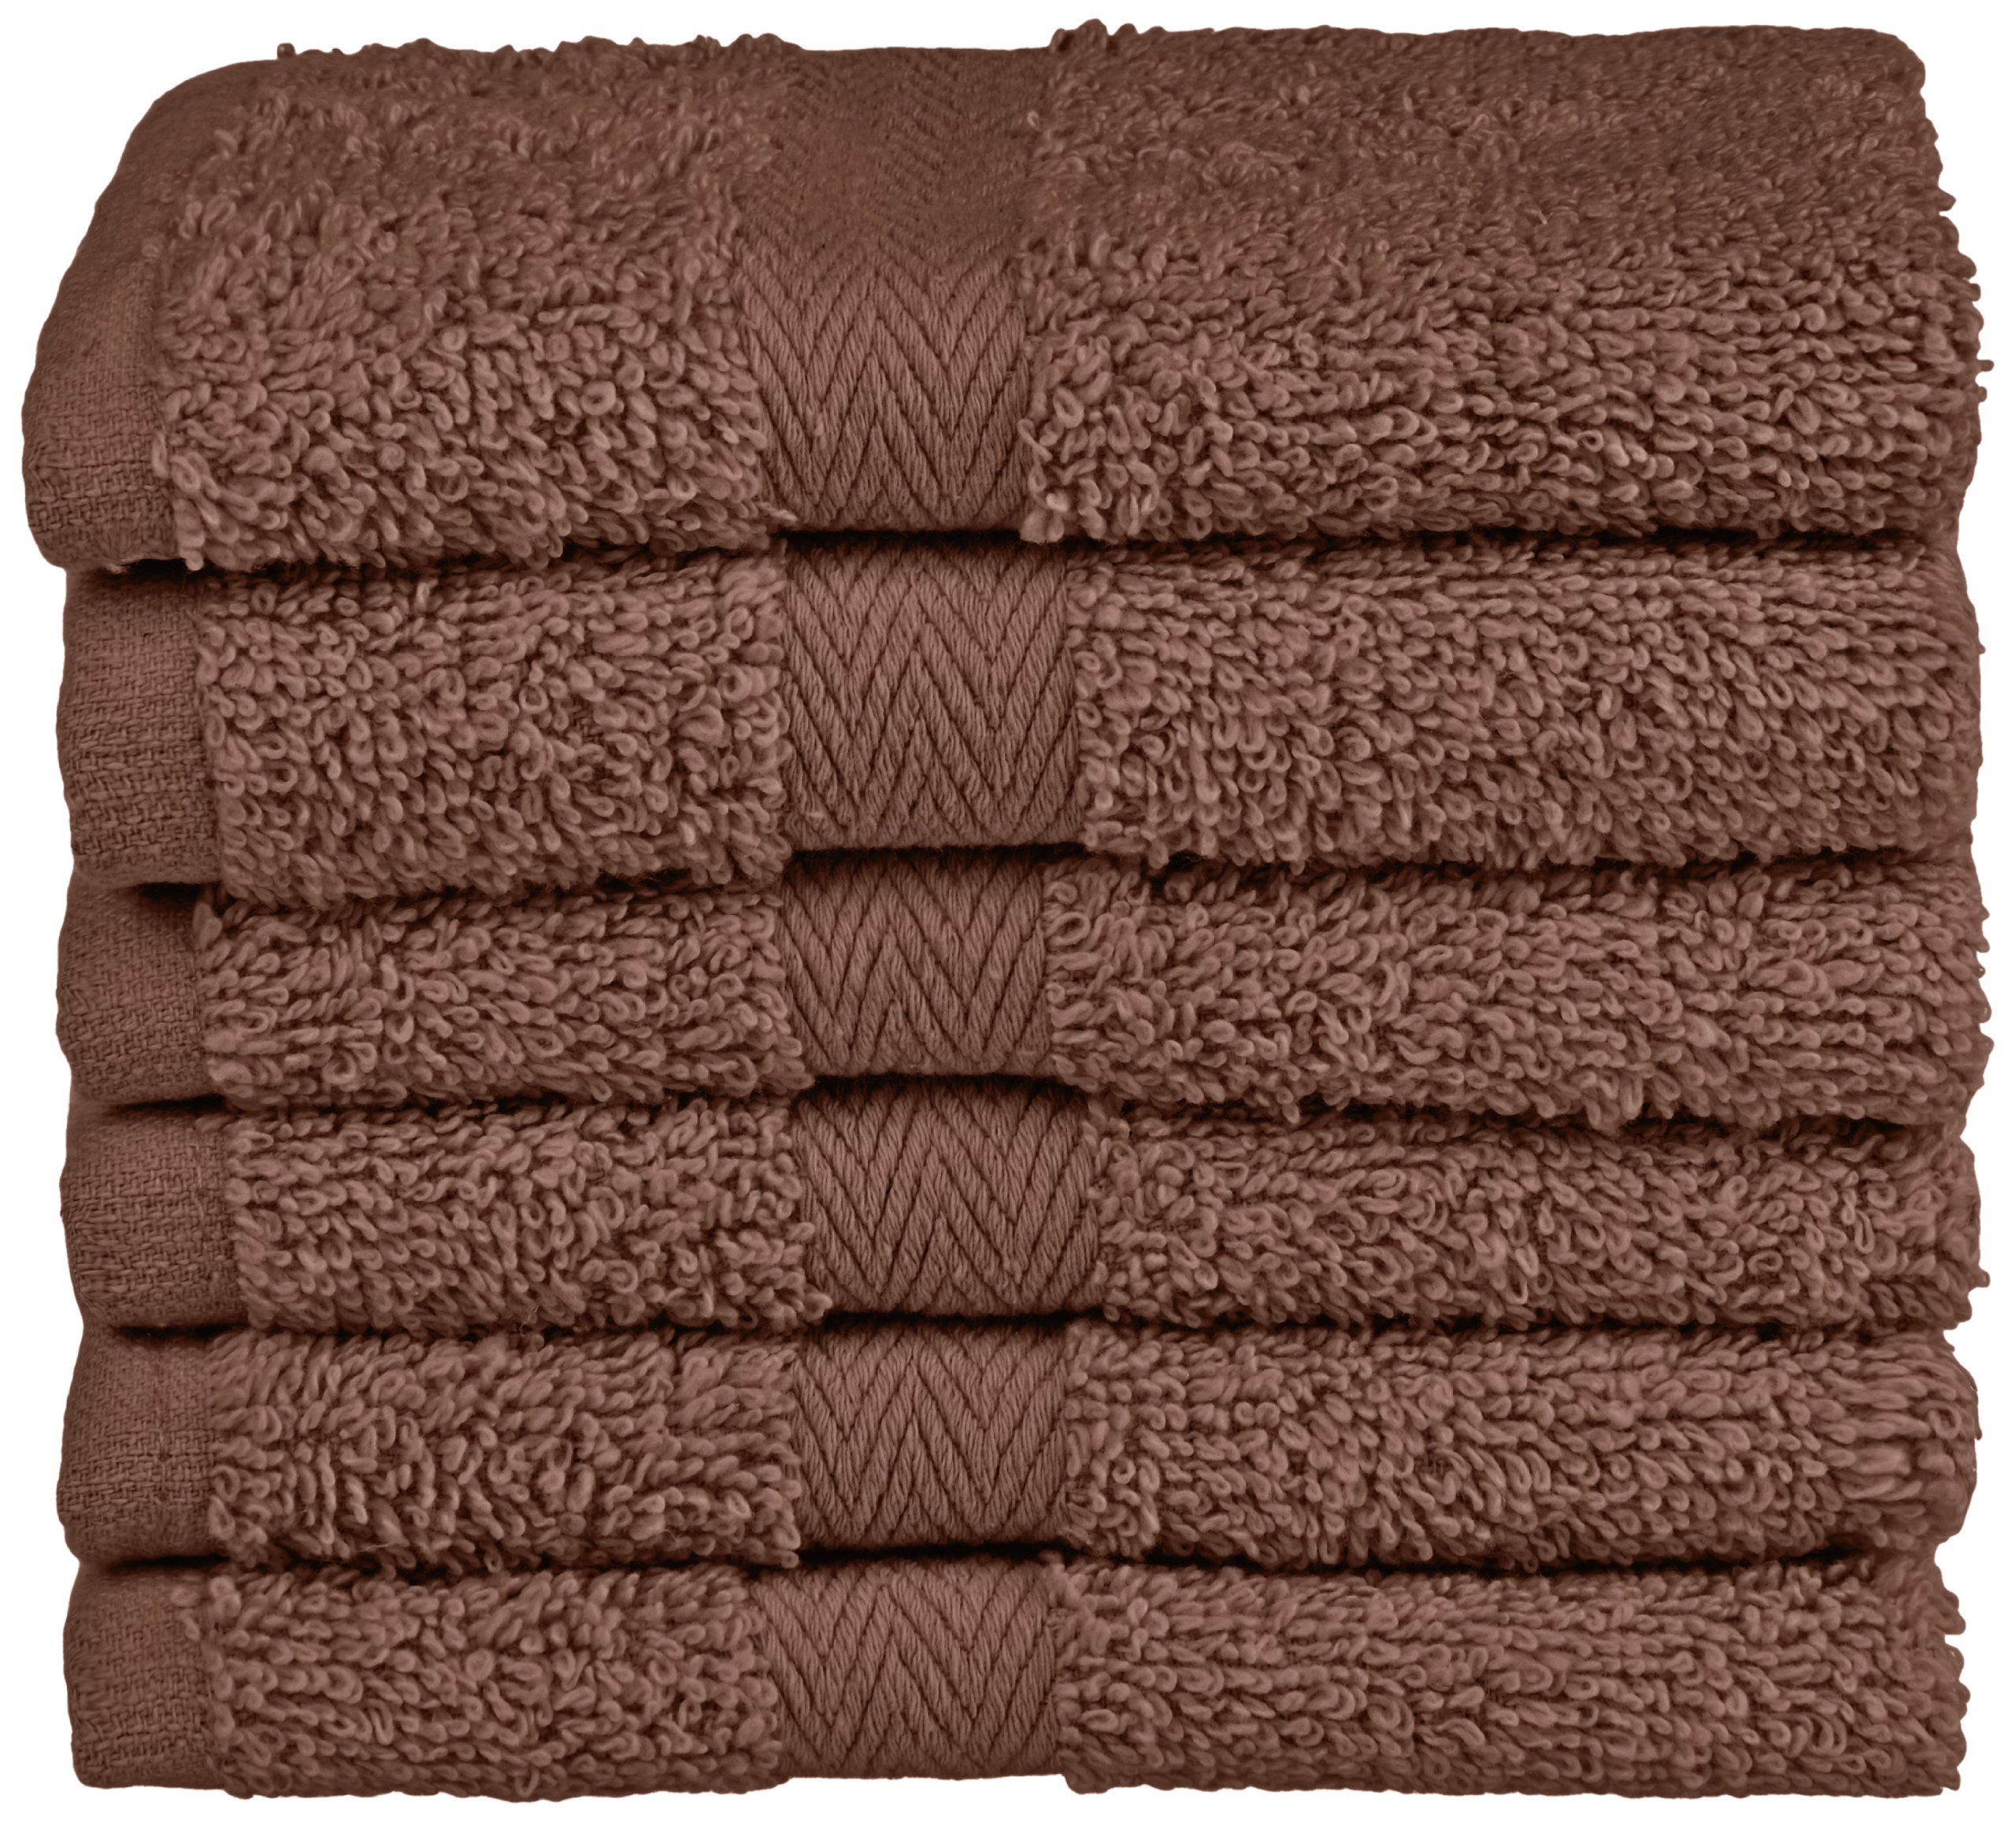 Northpoint Baroque Zero Twist Cotton Washcloths, 13 by 13-Inch, Cocoa, Set of 6